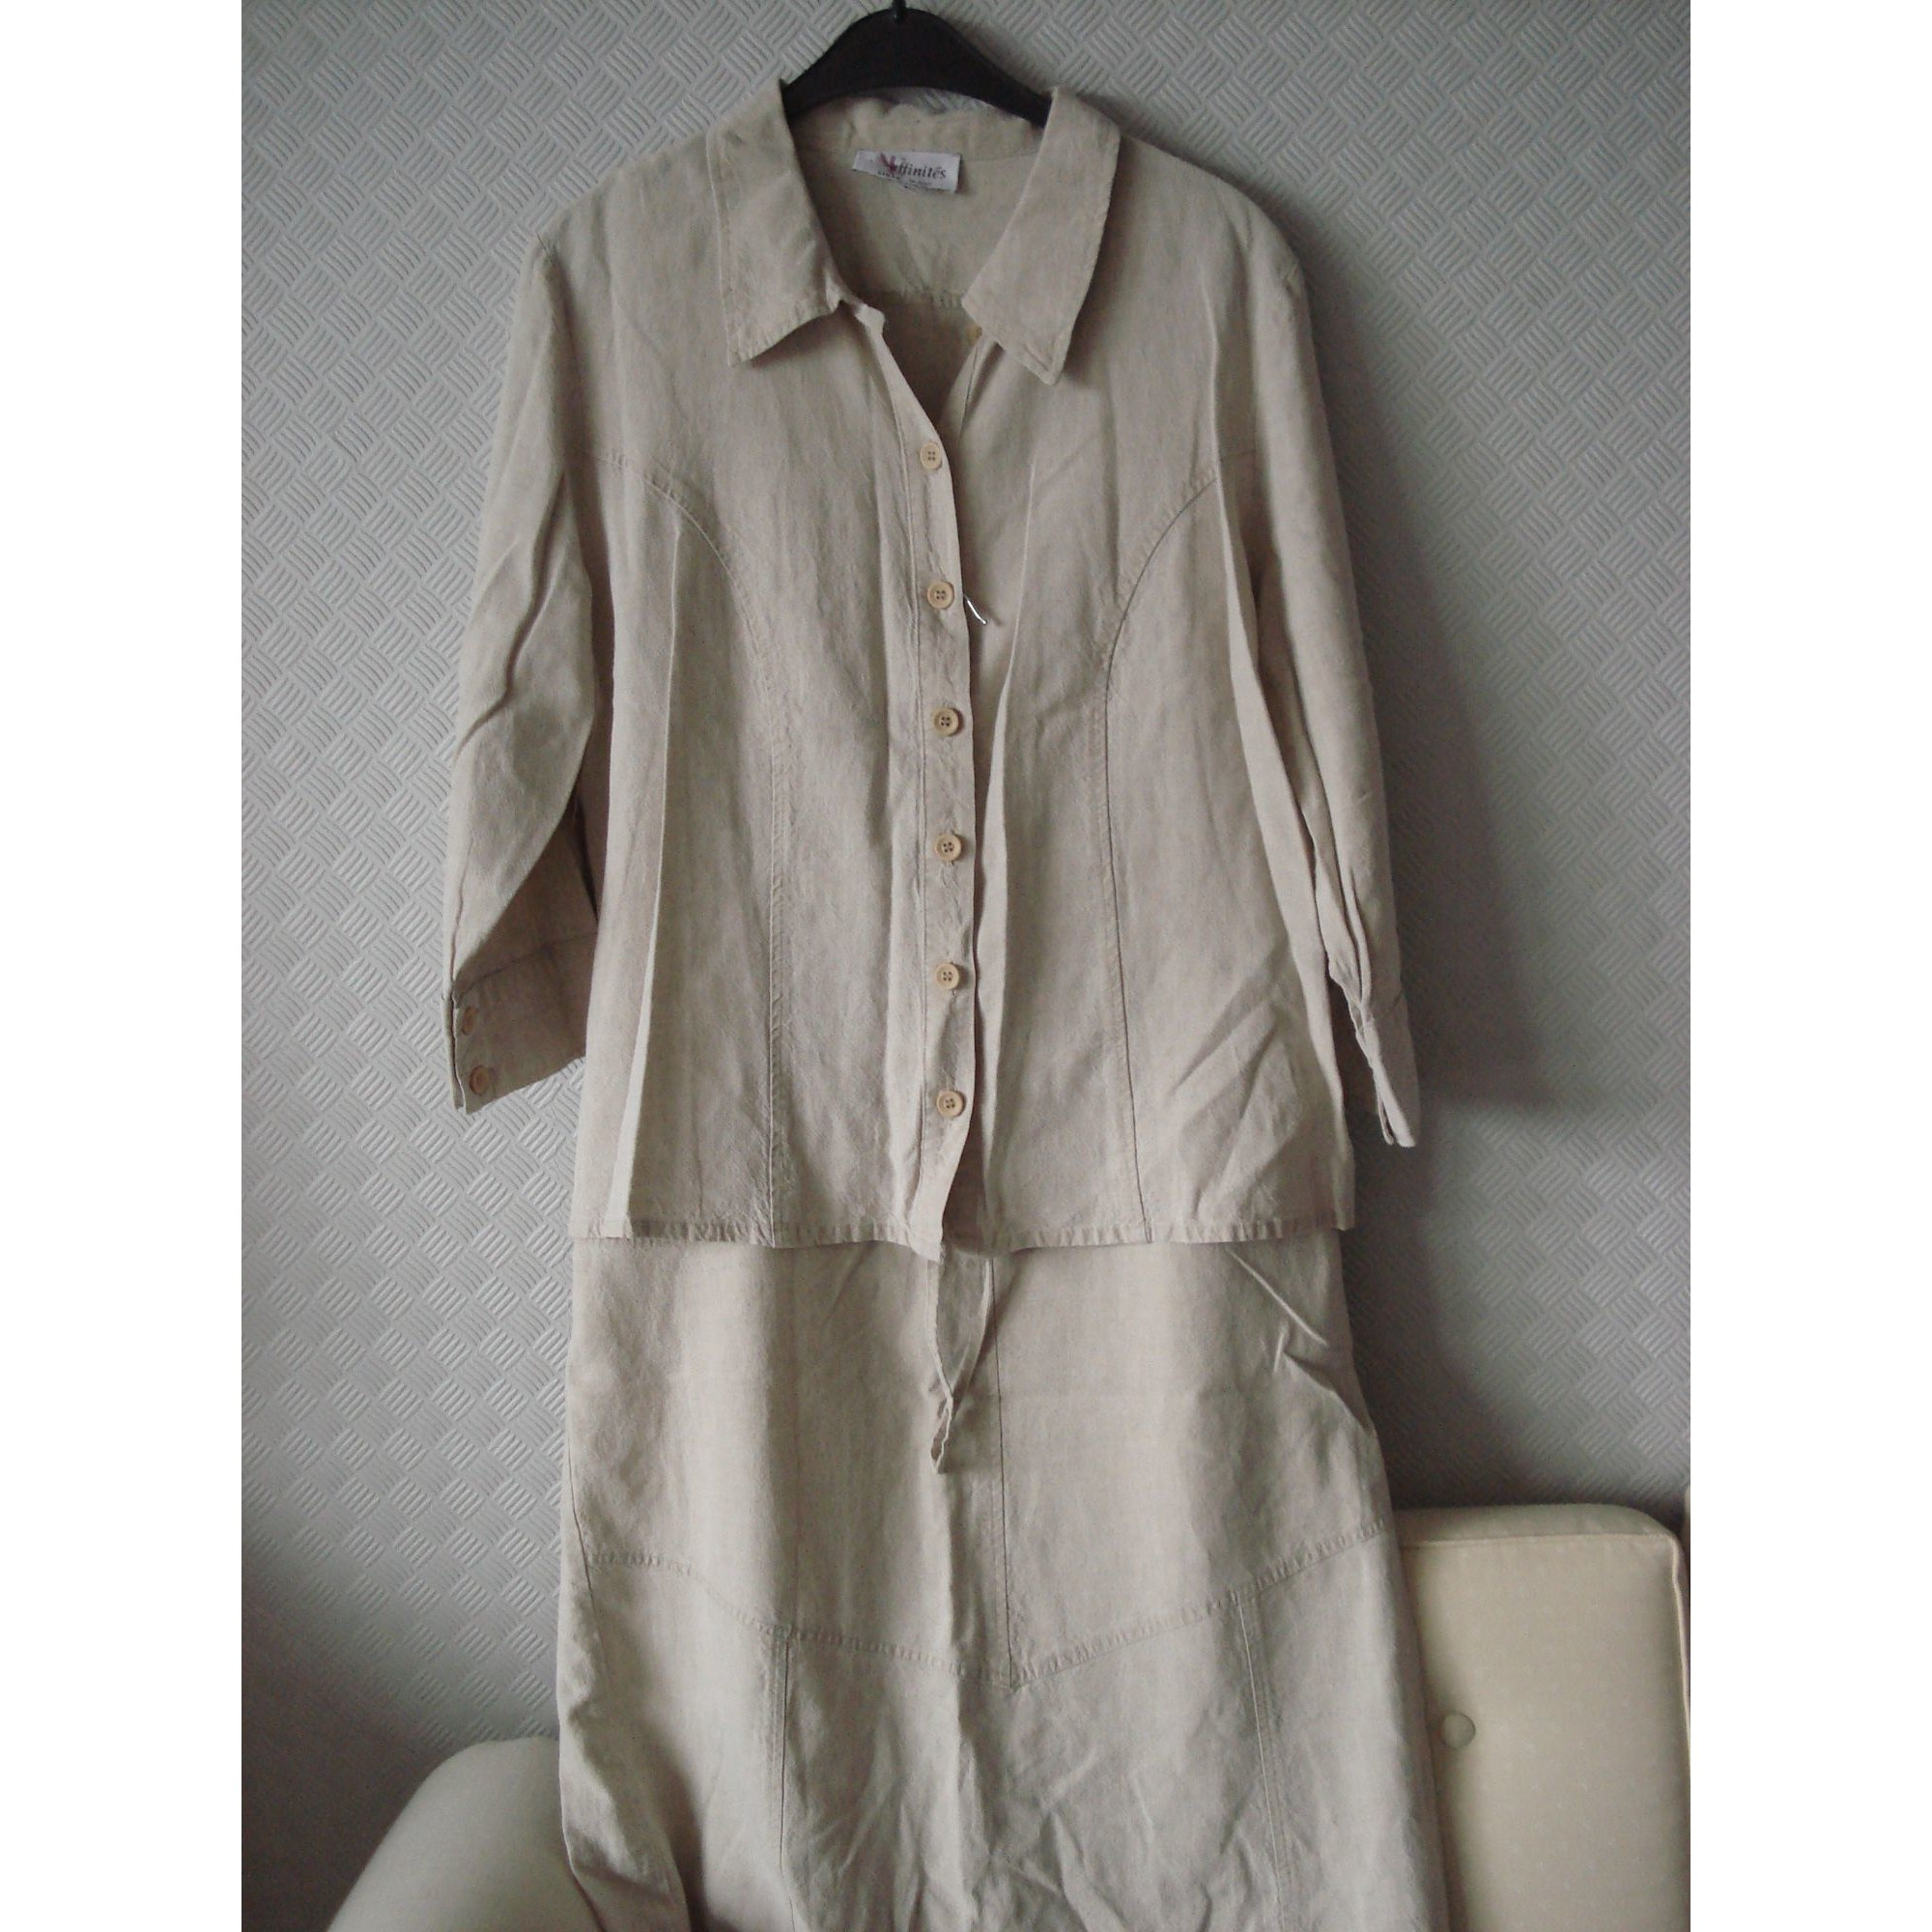 Tailleur jupe ARMAND THIERY Beige, camel